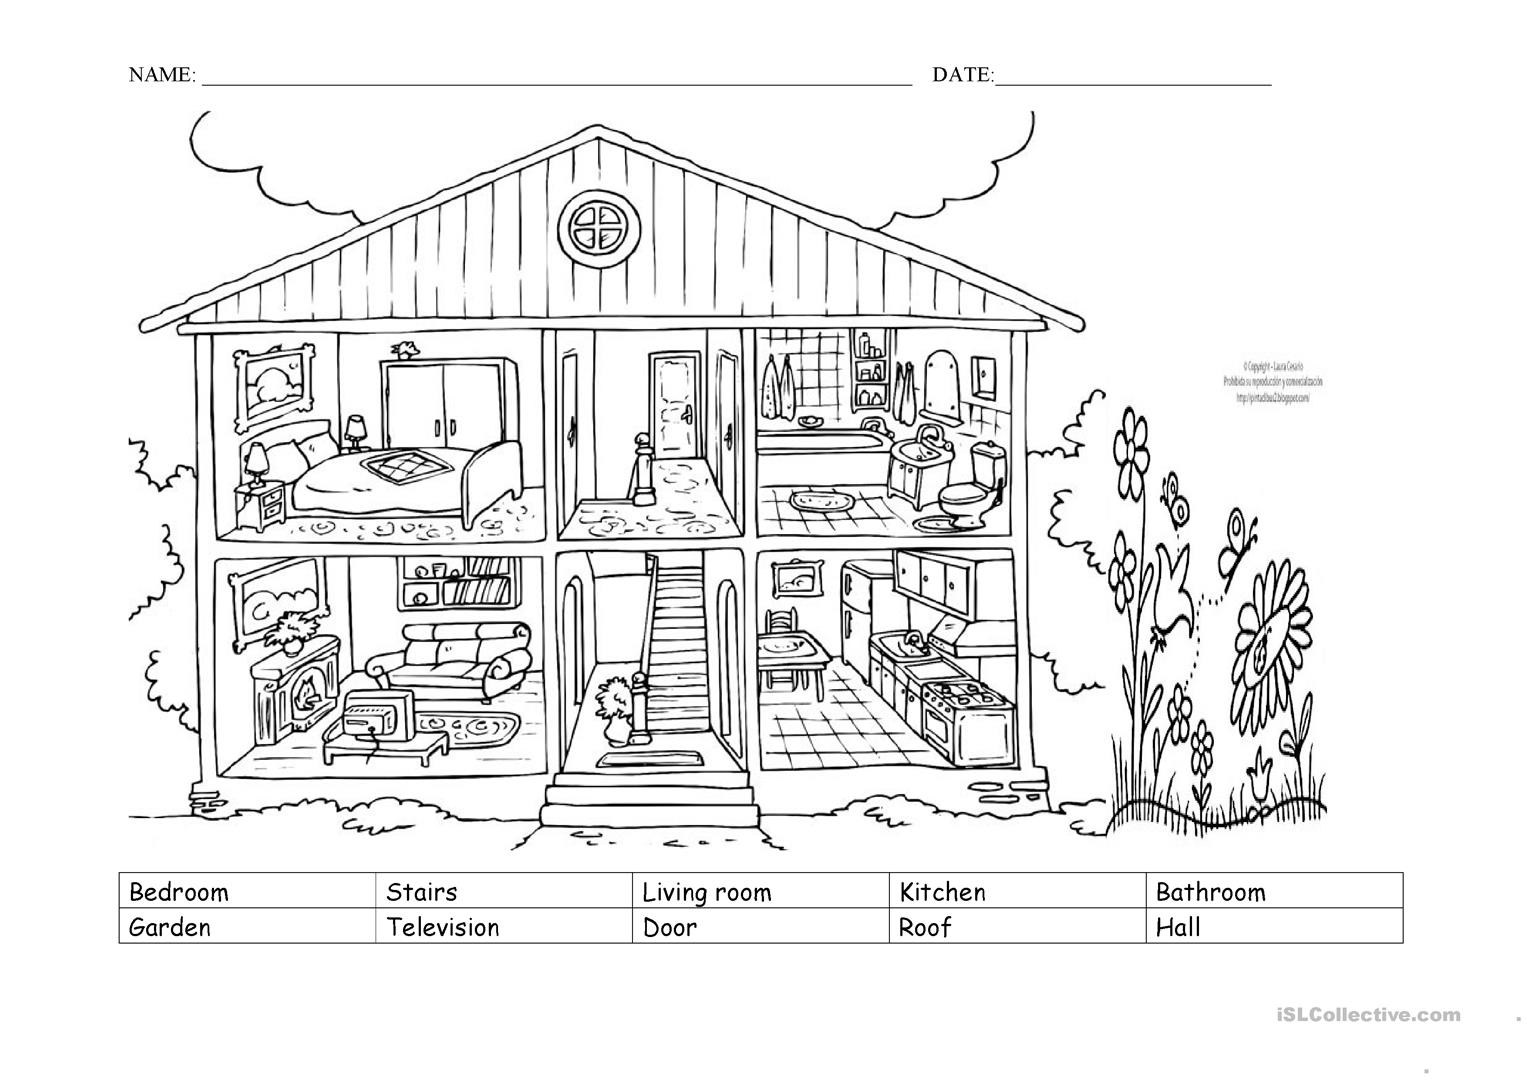 House Labeling Worksheet